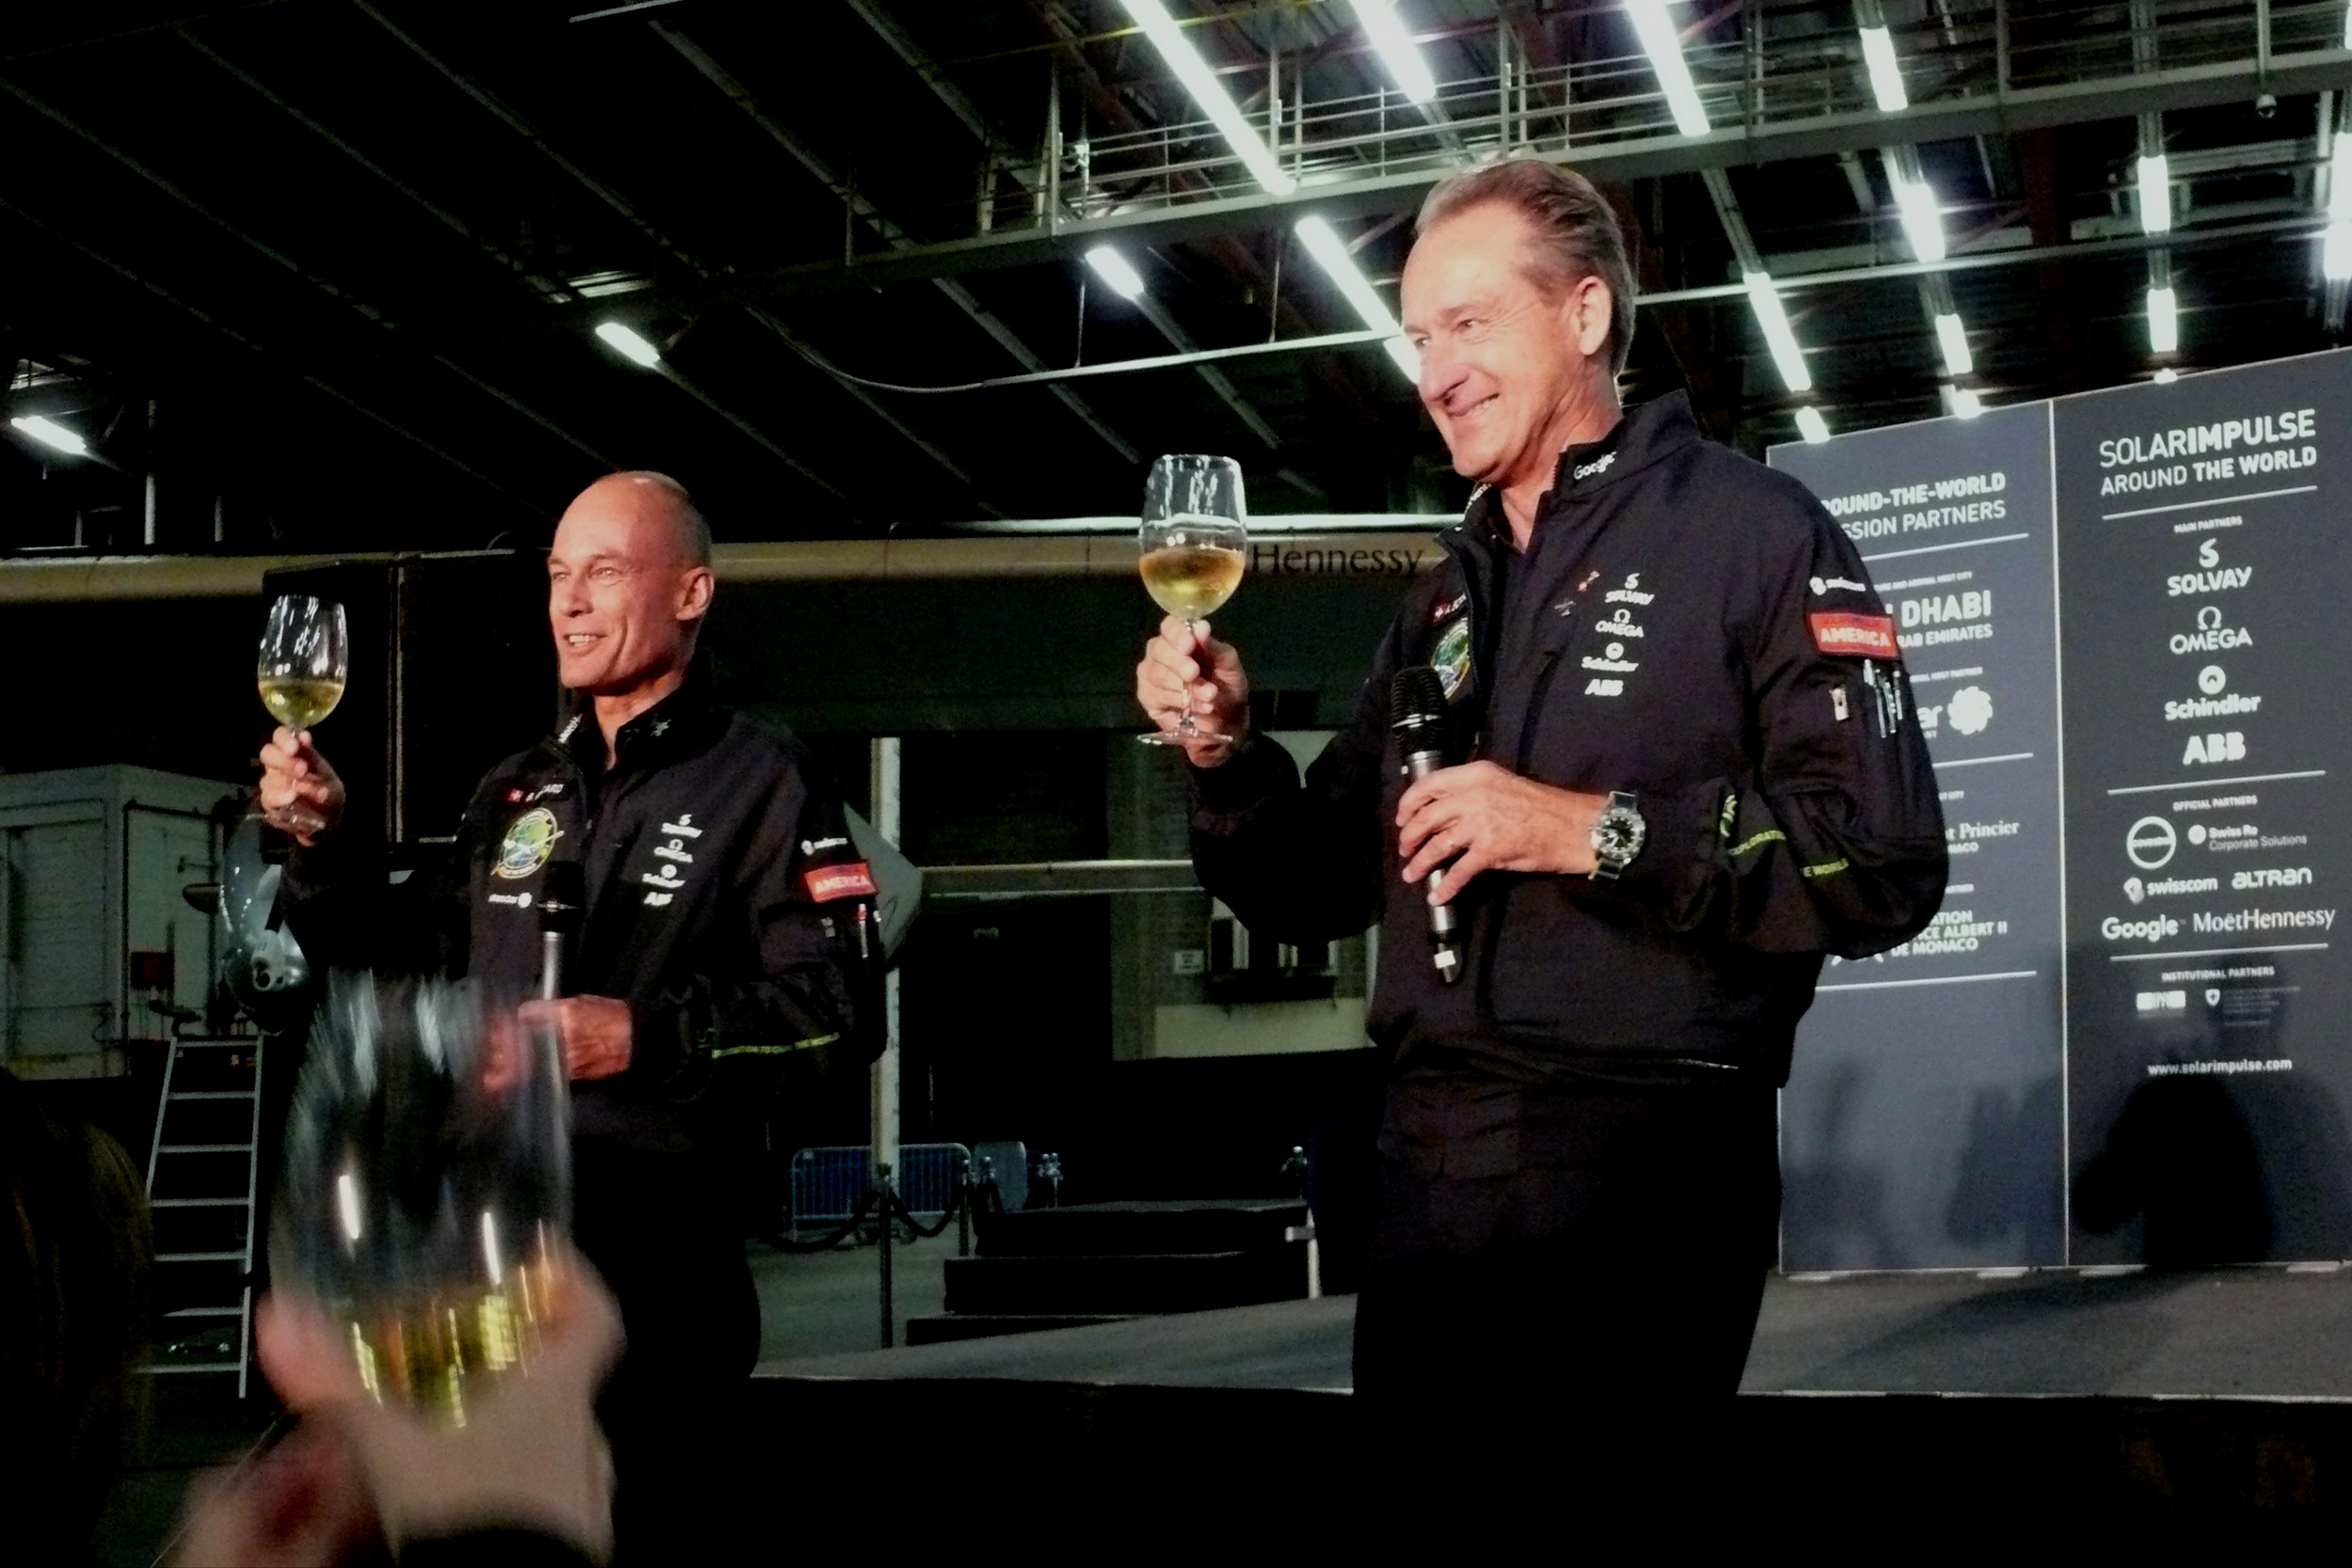 A toast to the next leg of their flight to Europe in the days ahead after the Solar Impulse 2 is powered up by the Sun at the airport.